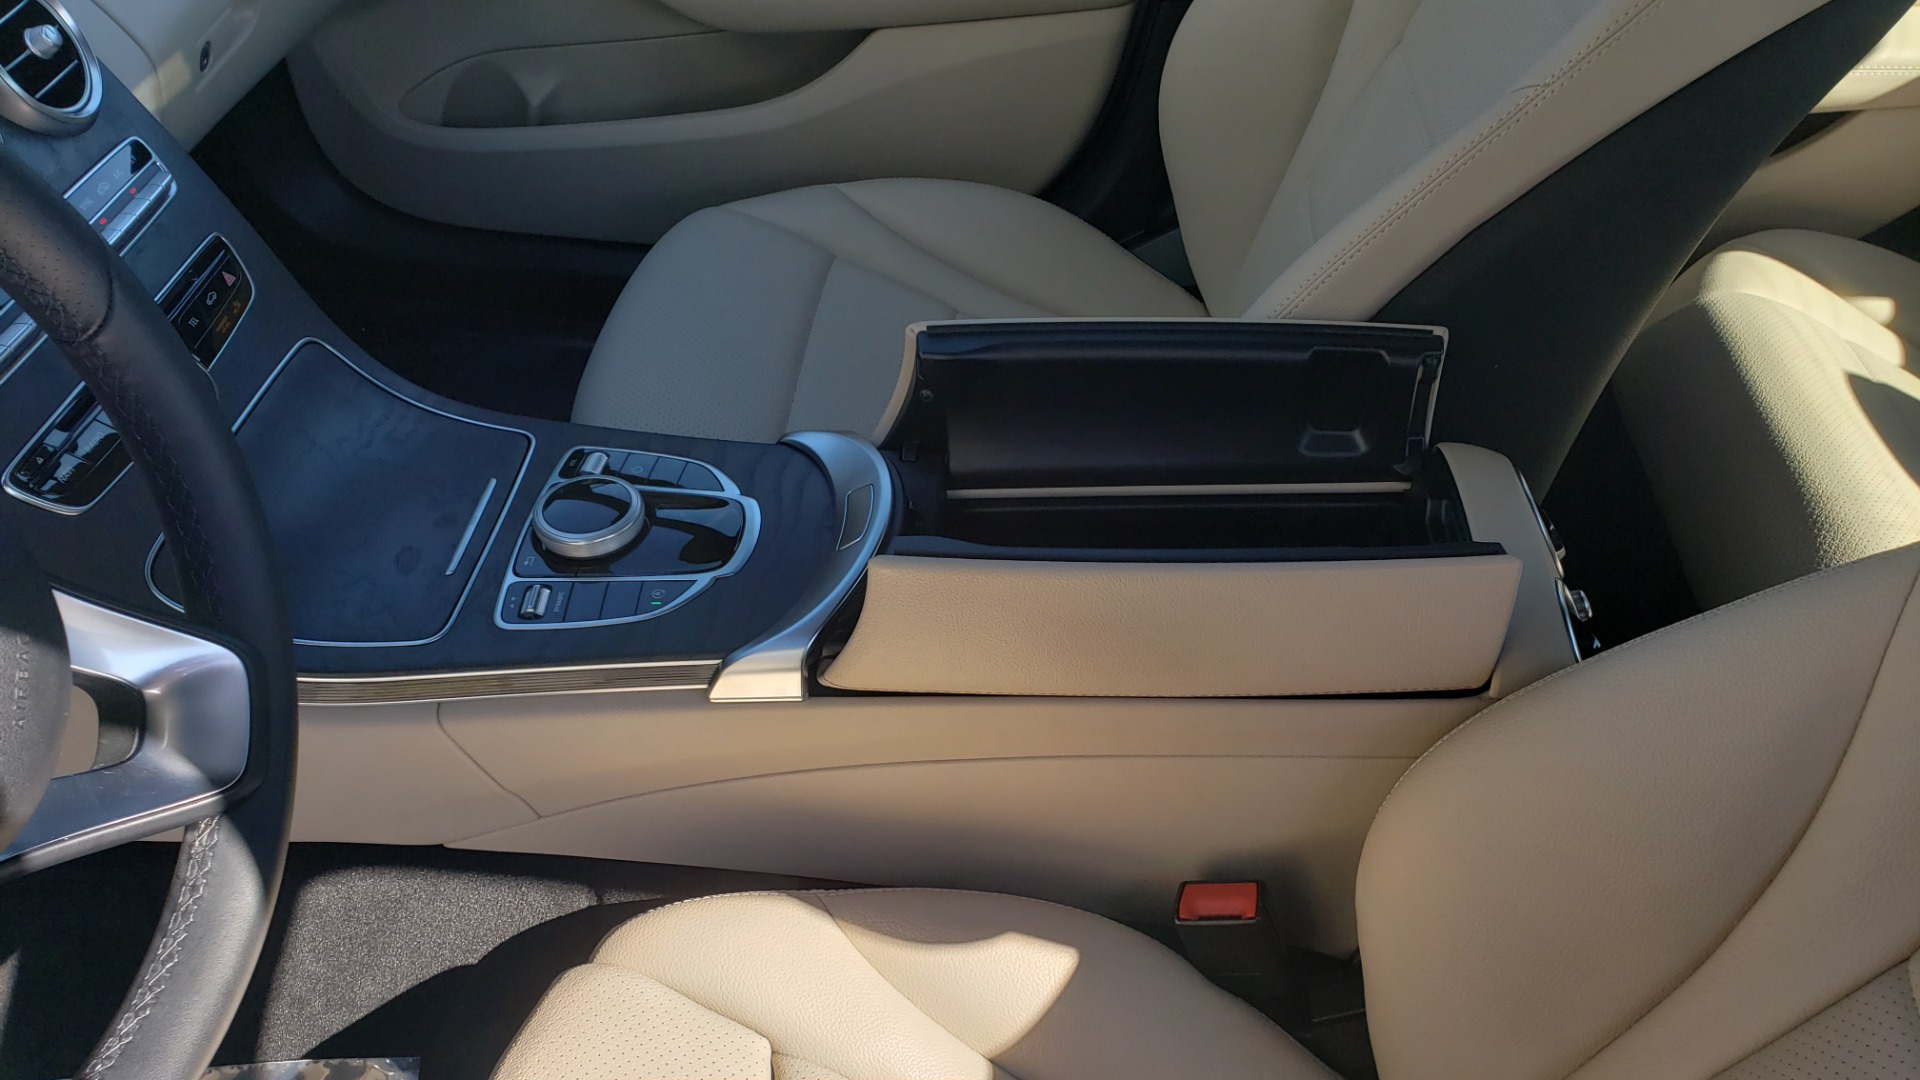 Used 2018 Mercedes-Benz C-CLASS C 300 PREMIUM / SUNROOF / BURMESTER / BSM / REARVIEW for sale $23,995 at Formula Imports in Charlotte NC 28227 50